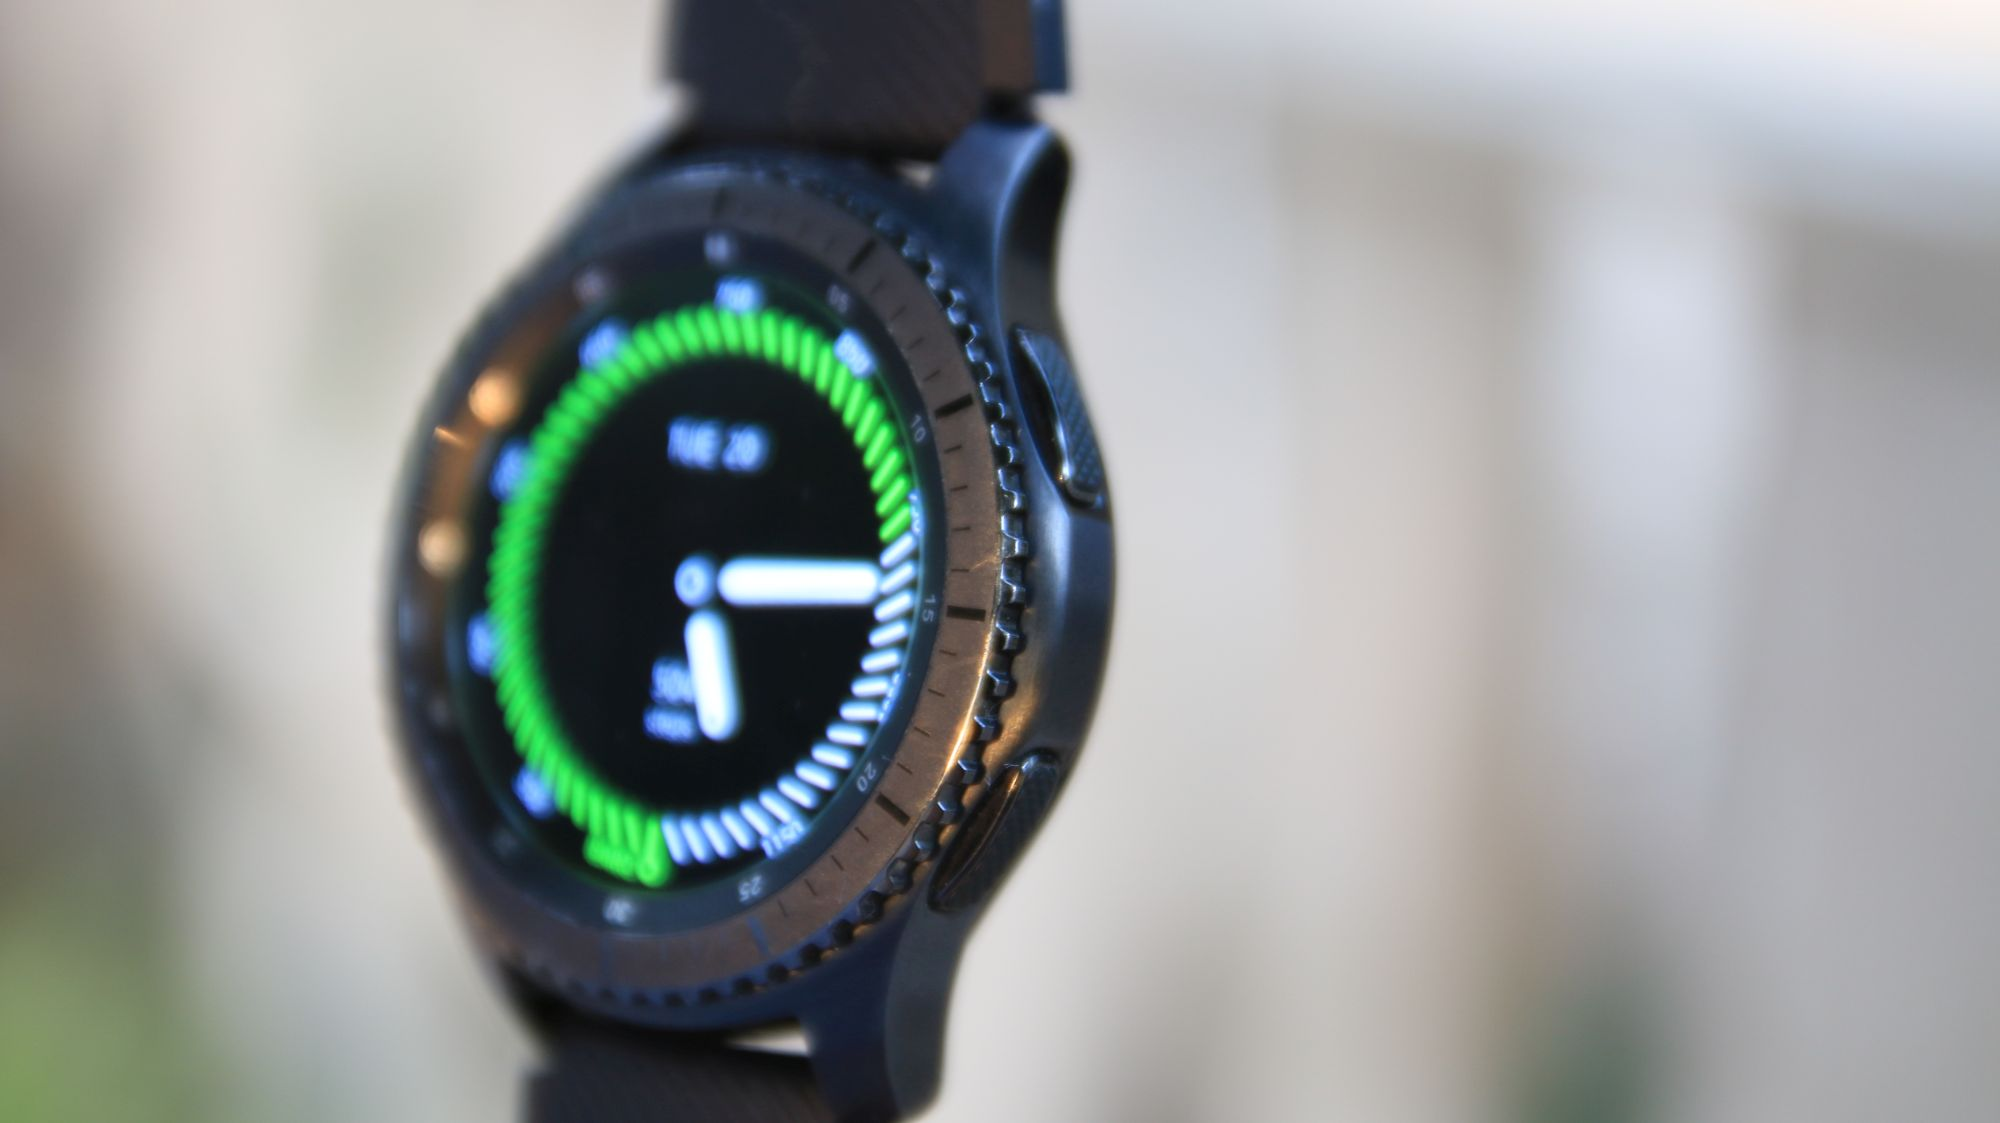 Samsung Gear S3 Frontier review: Outclassing most